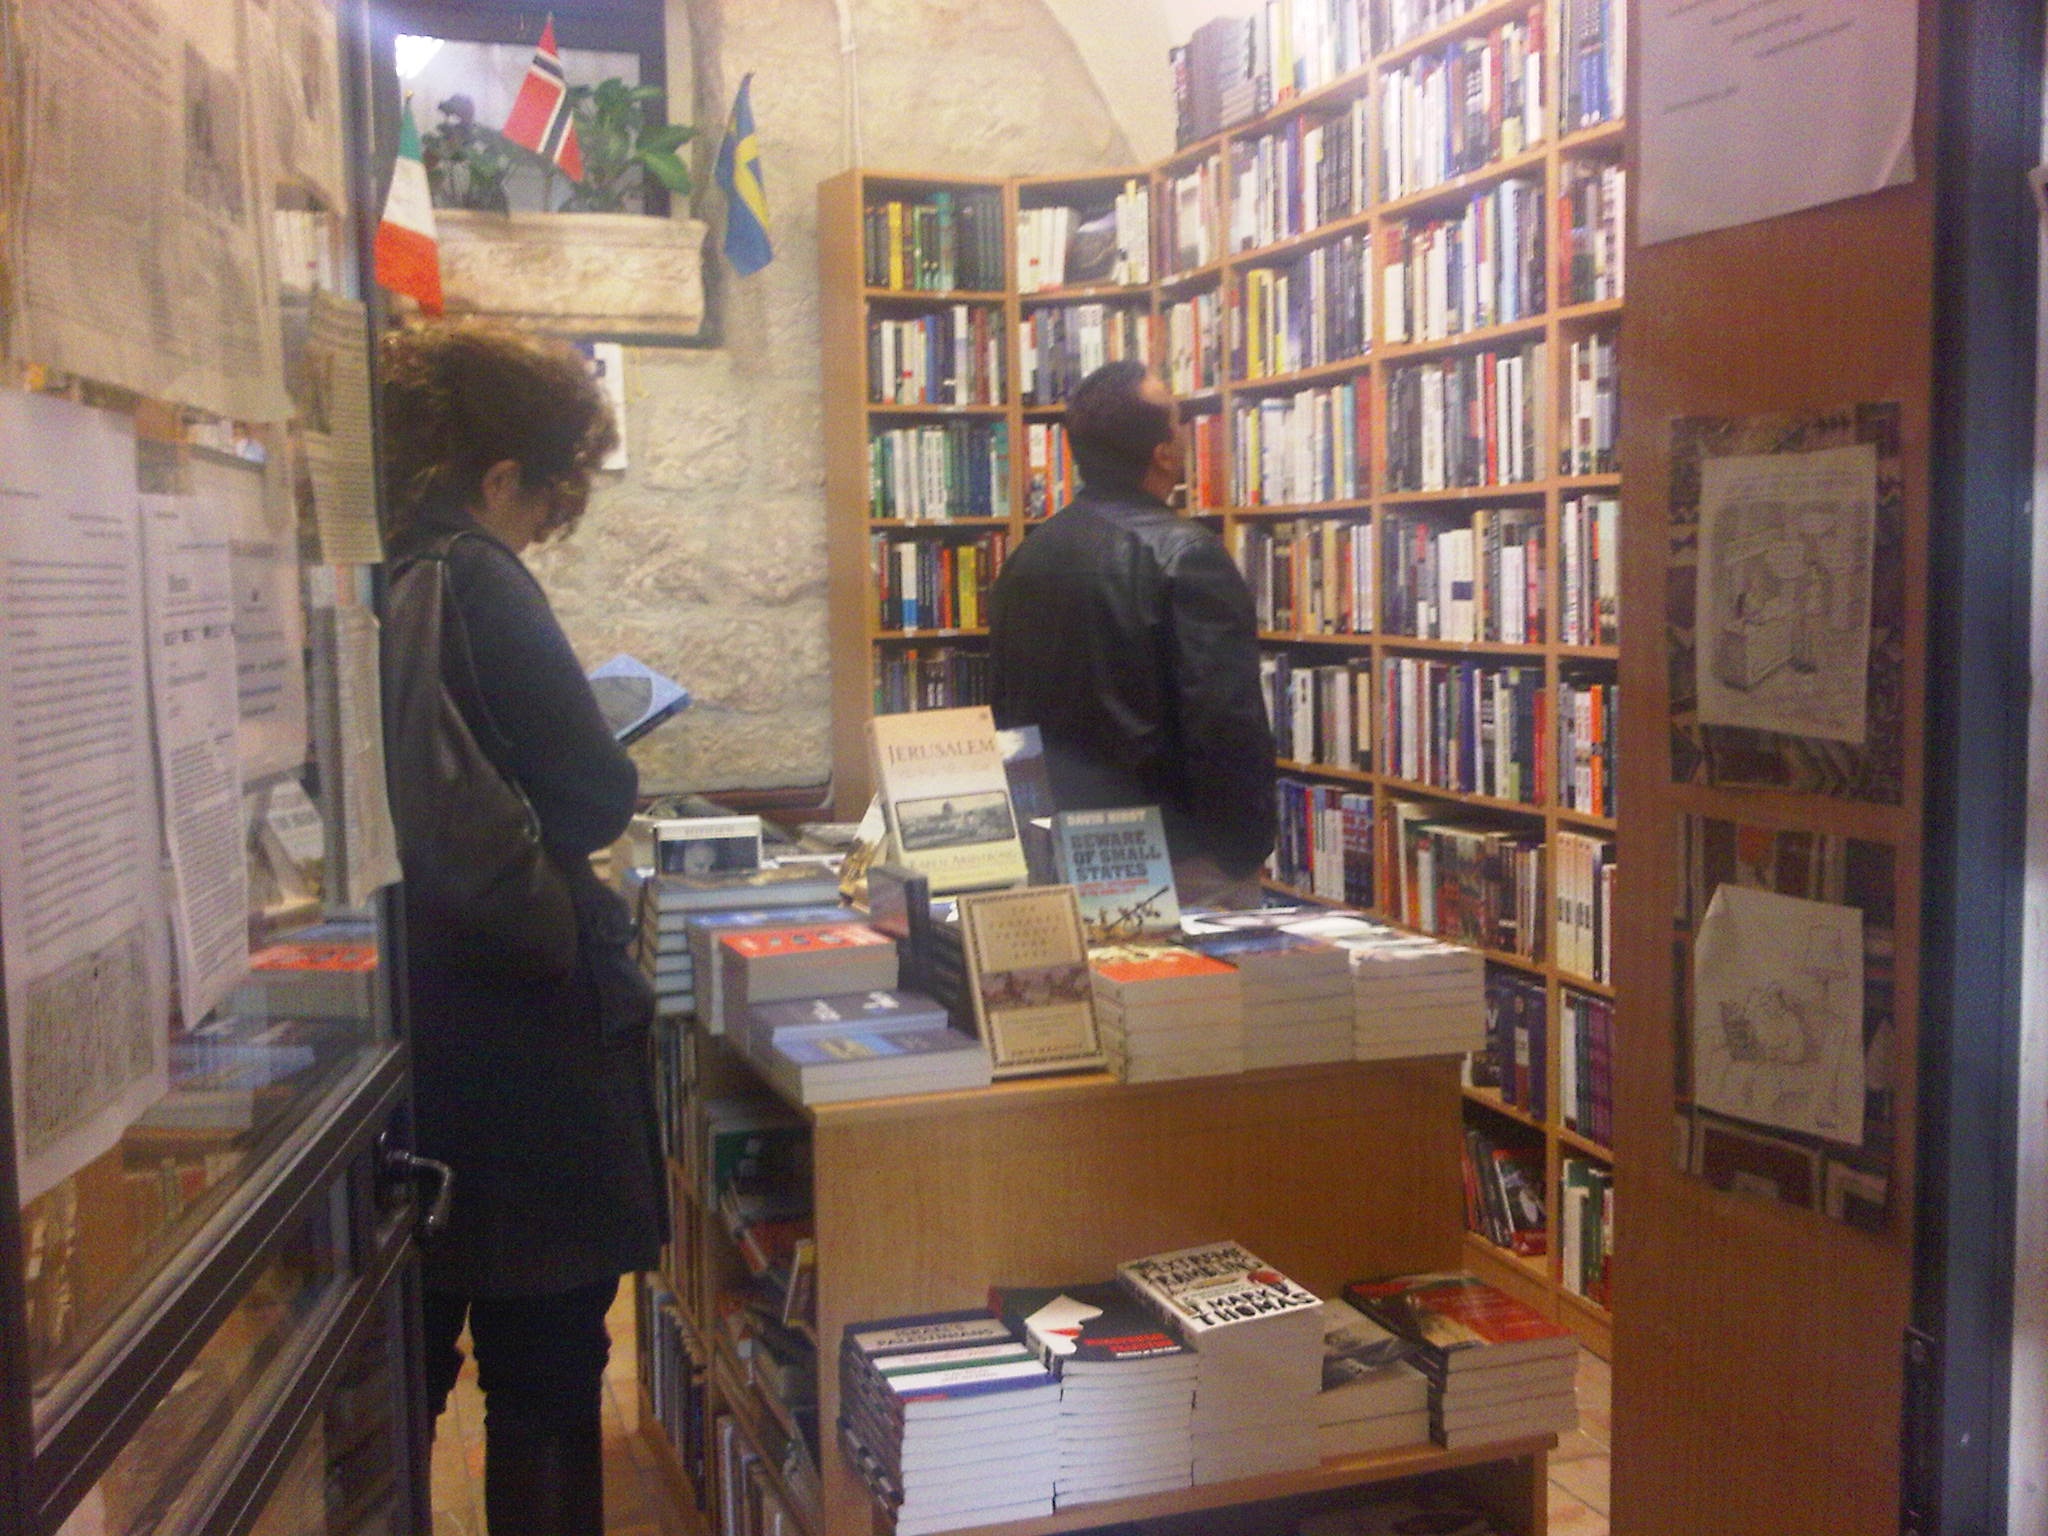 Harriet Sherwood, and the Guardian's strange fixation on the survival of one Jerusalem bookshop